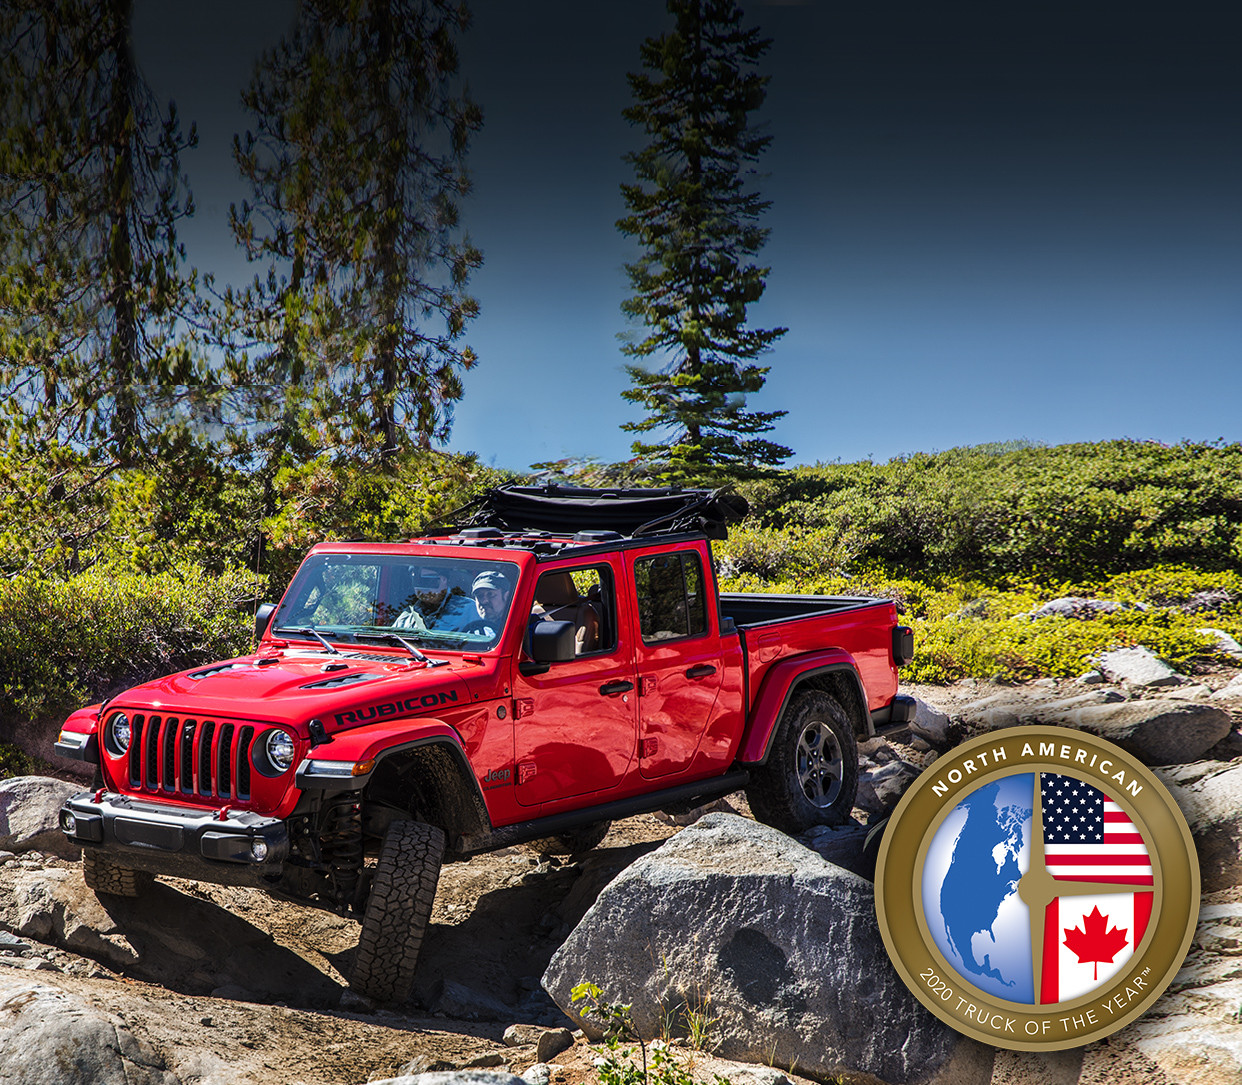 Red 2020 Jeep Gladiator being driven through an extremely rocky terrain.